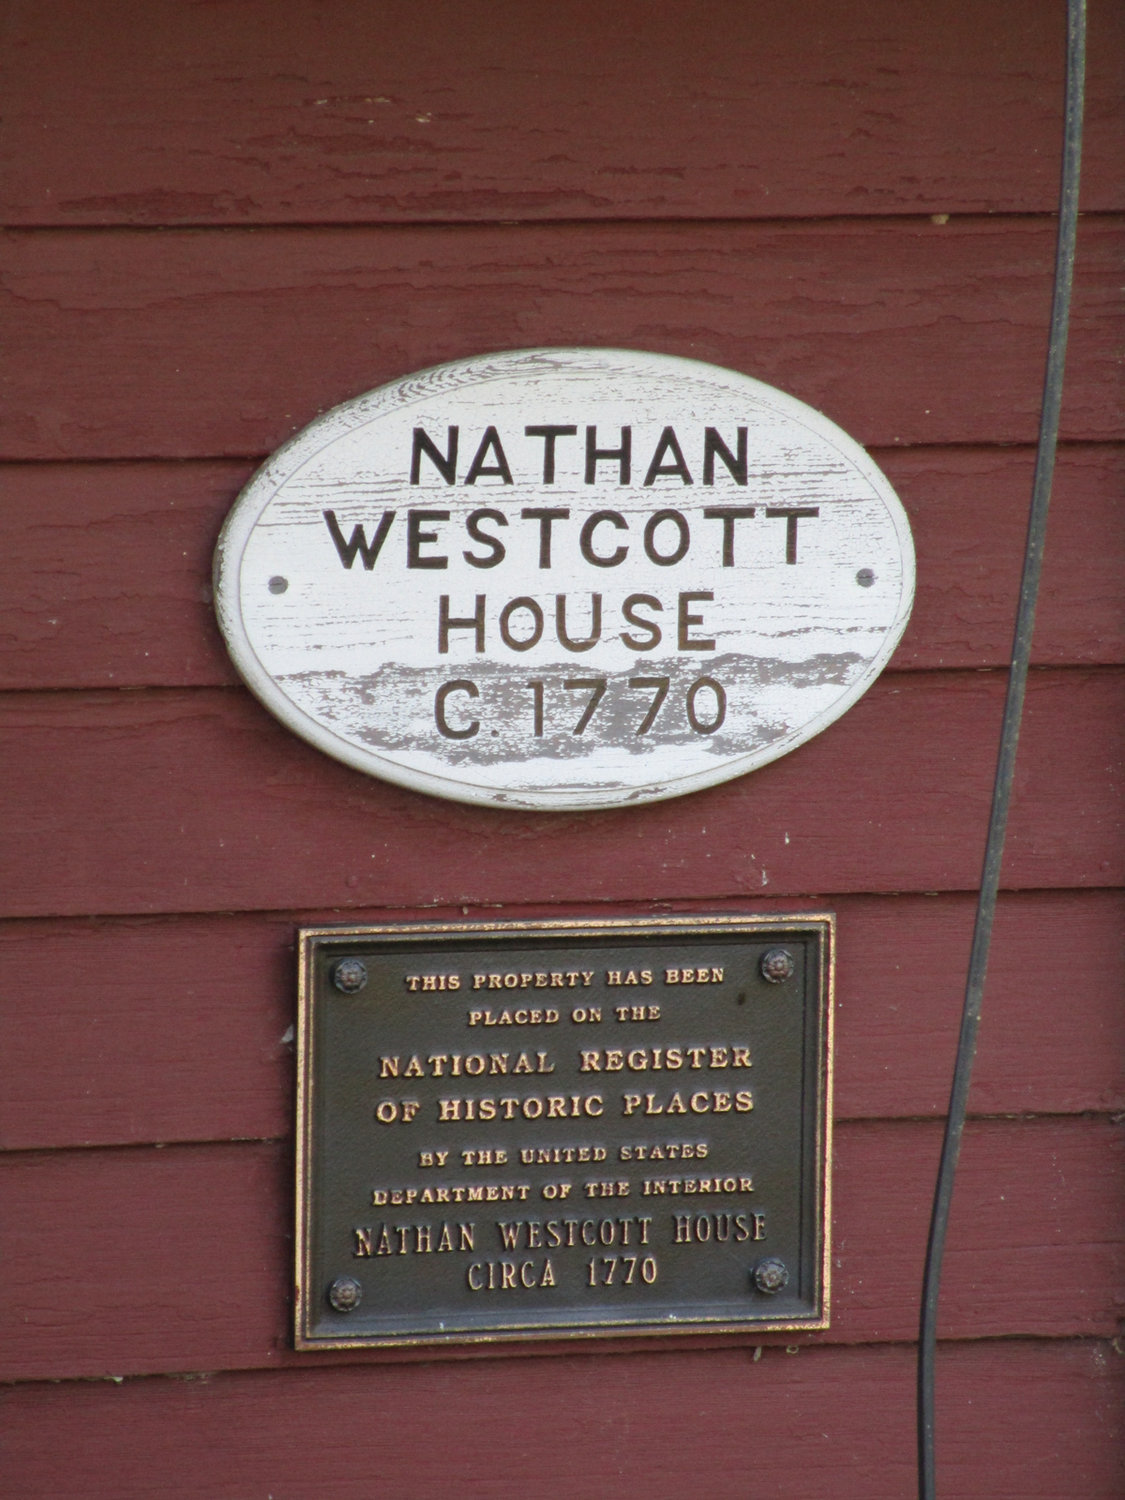 LOCAL HERITAGE: The Westcott House was added to the National Register of Historic Places in the late 1980s, as memorialized by this plaque that remains affixed to the structure.